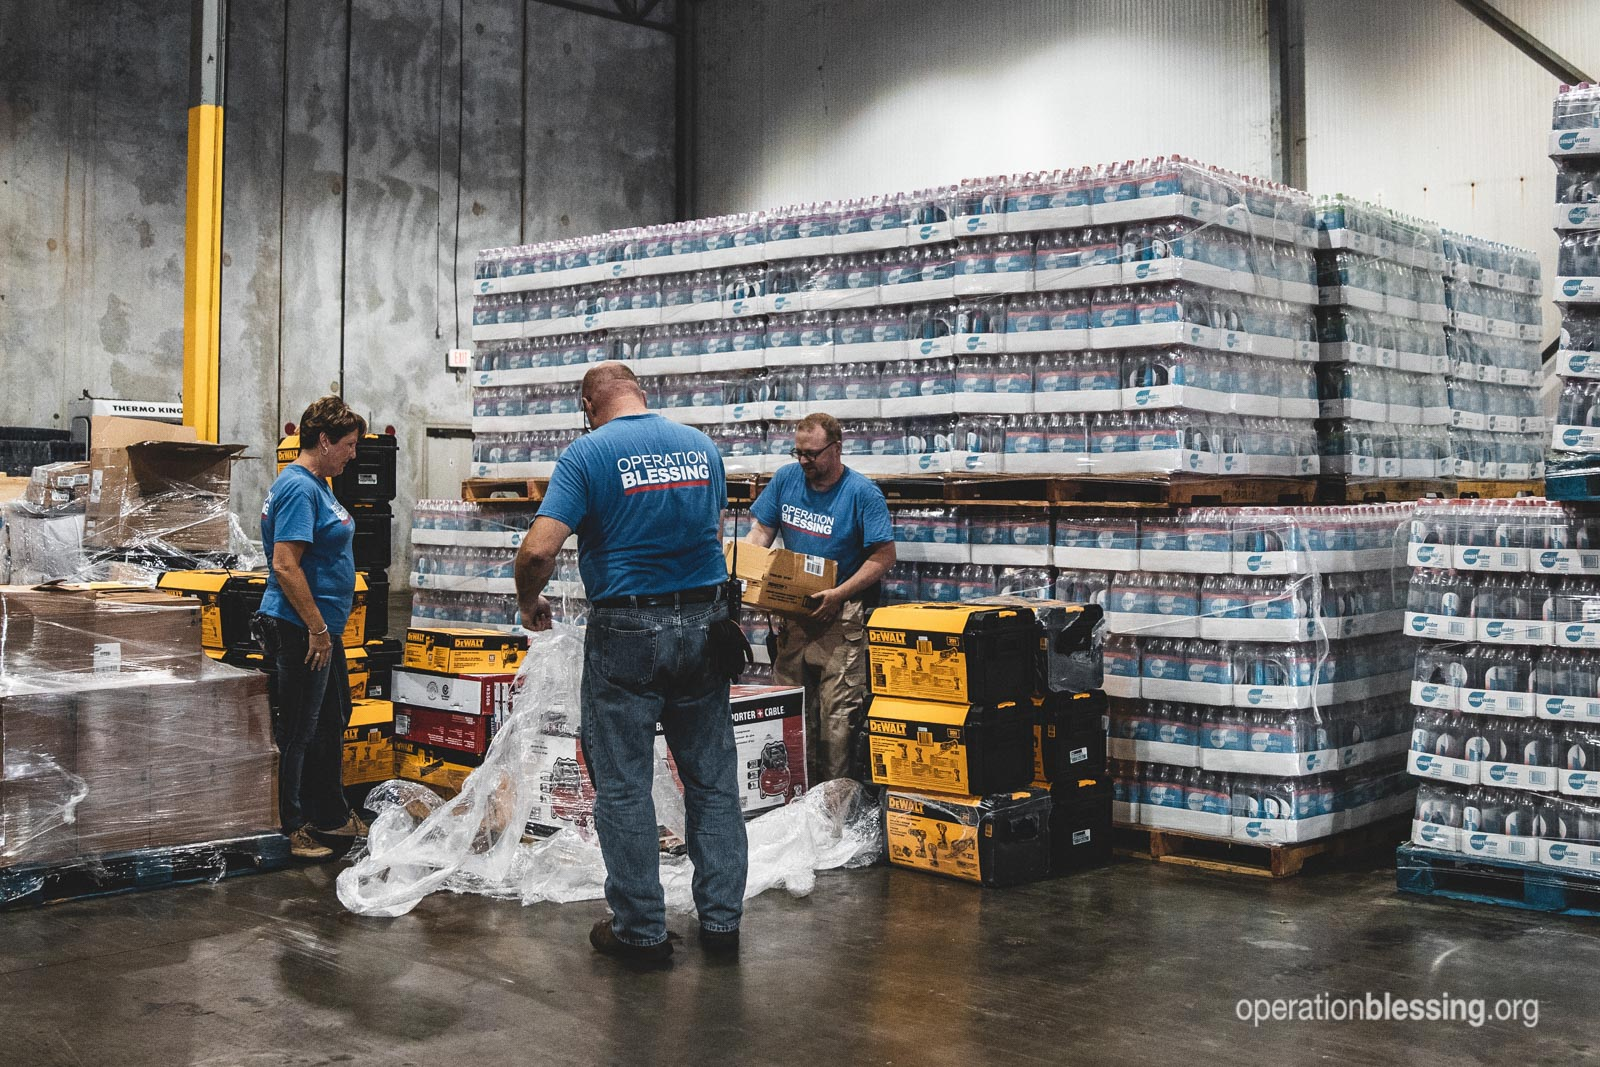 Preparing disaster relief supplies at our warehouse in Florida